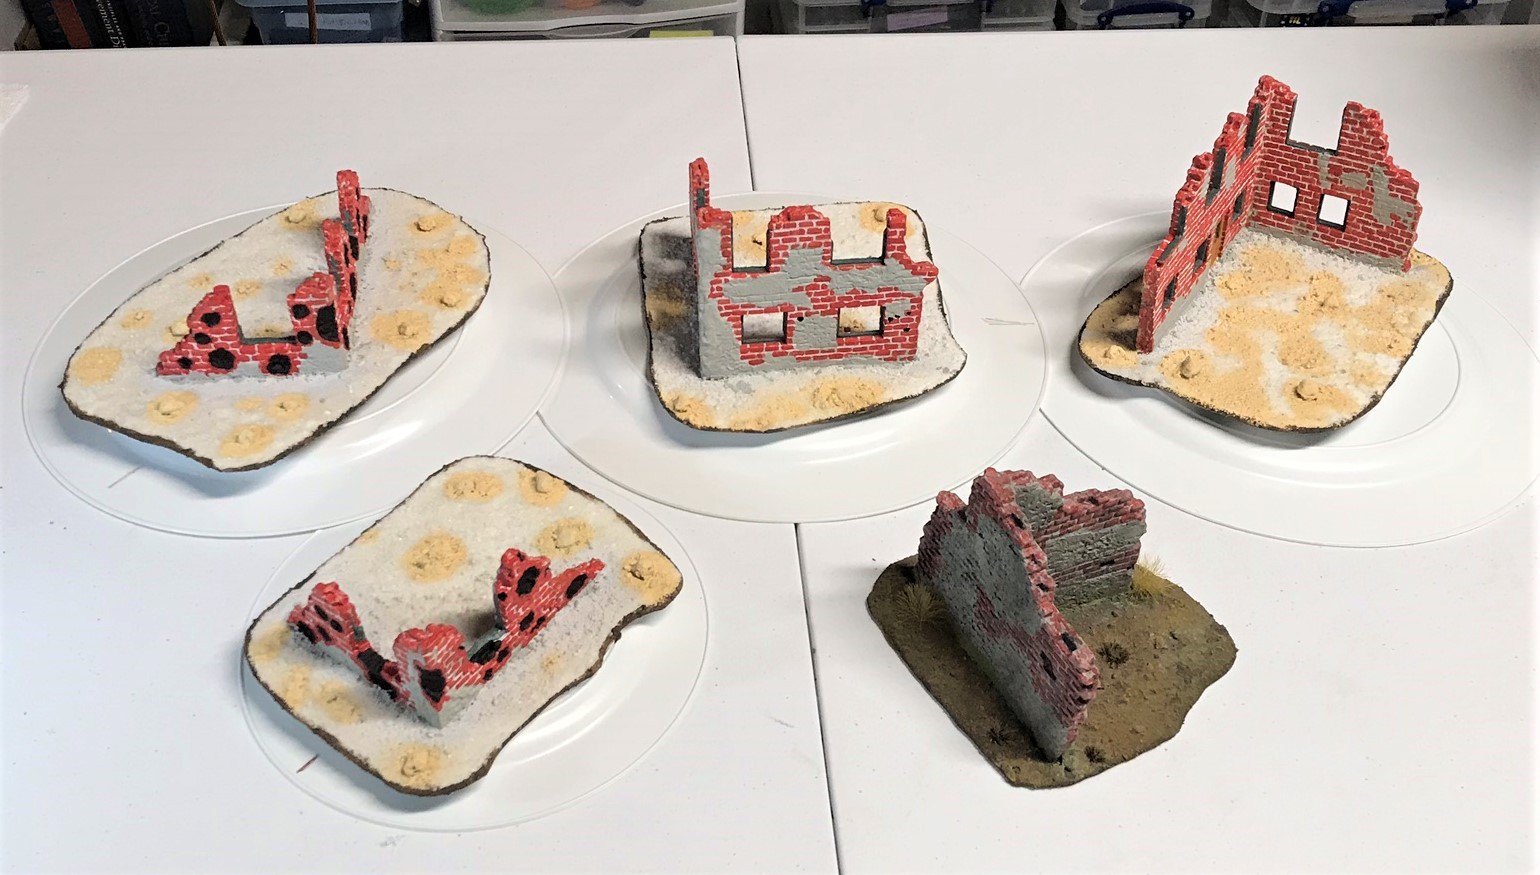 12 all buildings base coated with t section